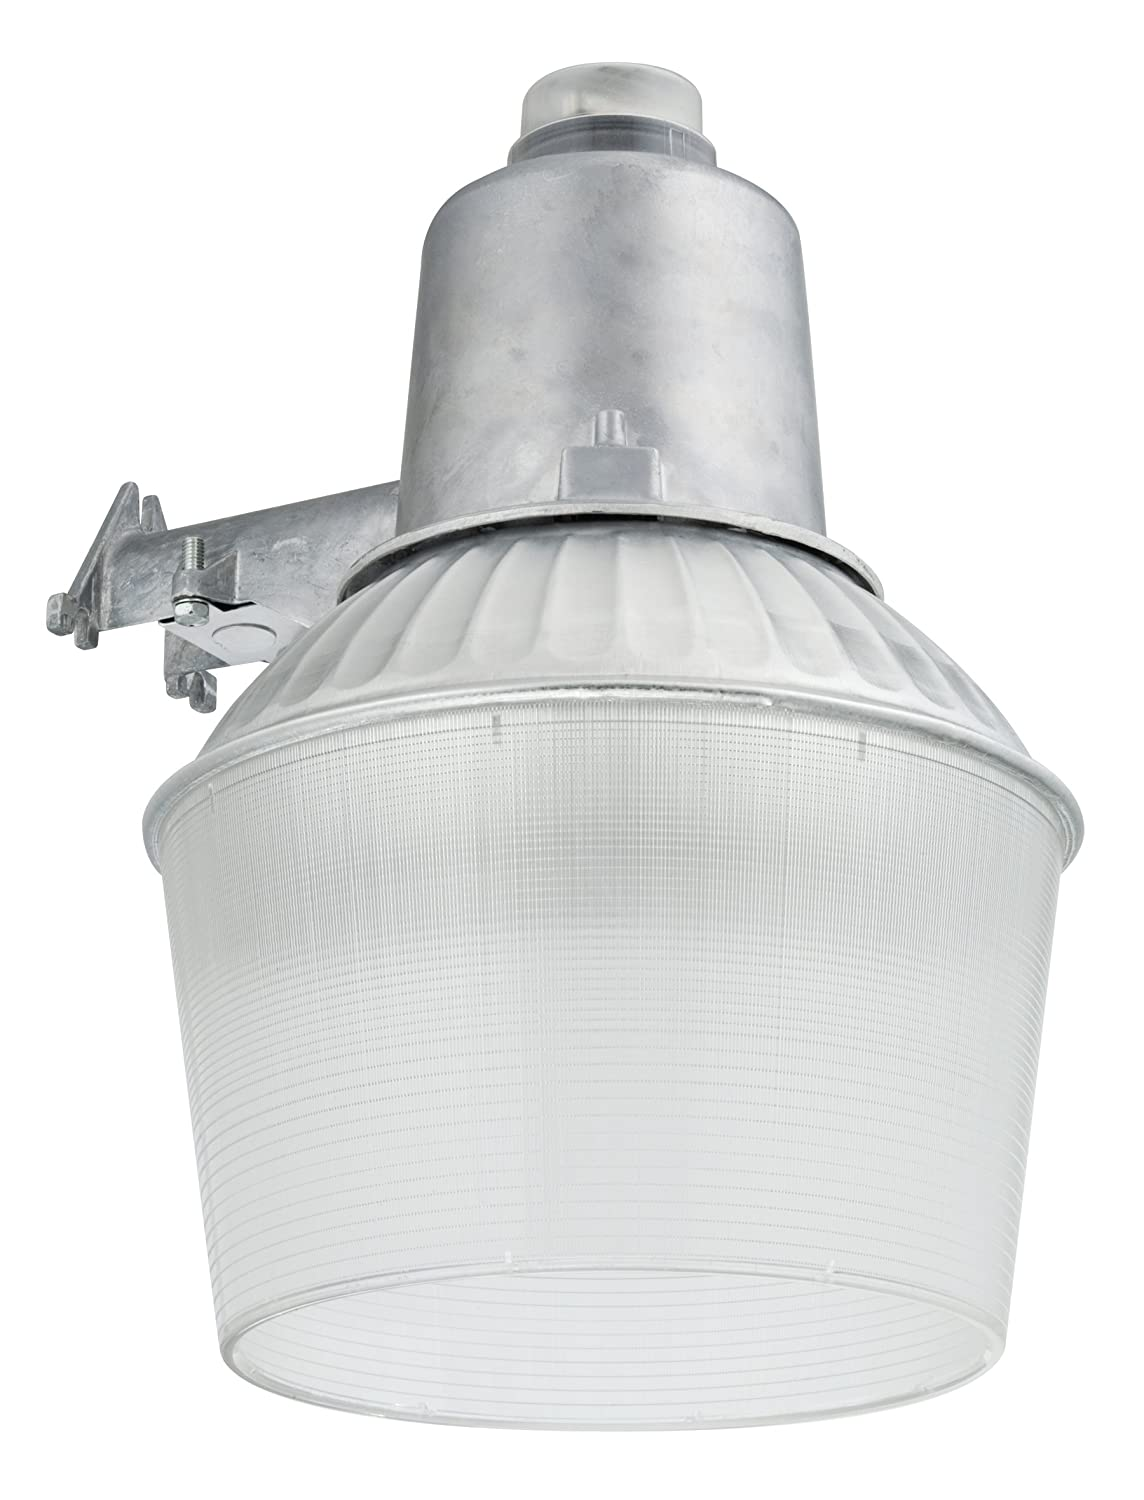 Lithonia lighting oal12 100m 120 per lp m2 premium 100 watt dusk to lithonia lighting oal12 100m 120 per lp m2 premium 100 watt dusk to dawn area light commercial street and area lighting amazon aloadofball Choice Image